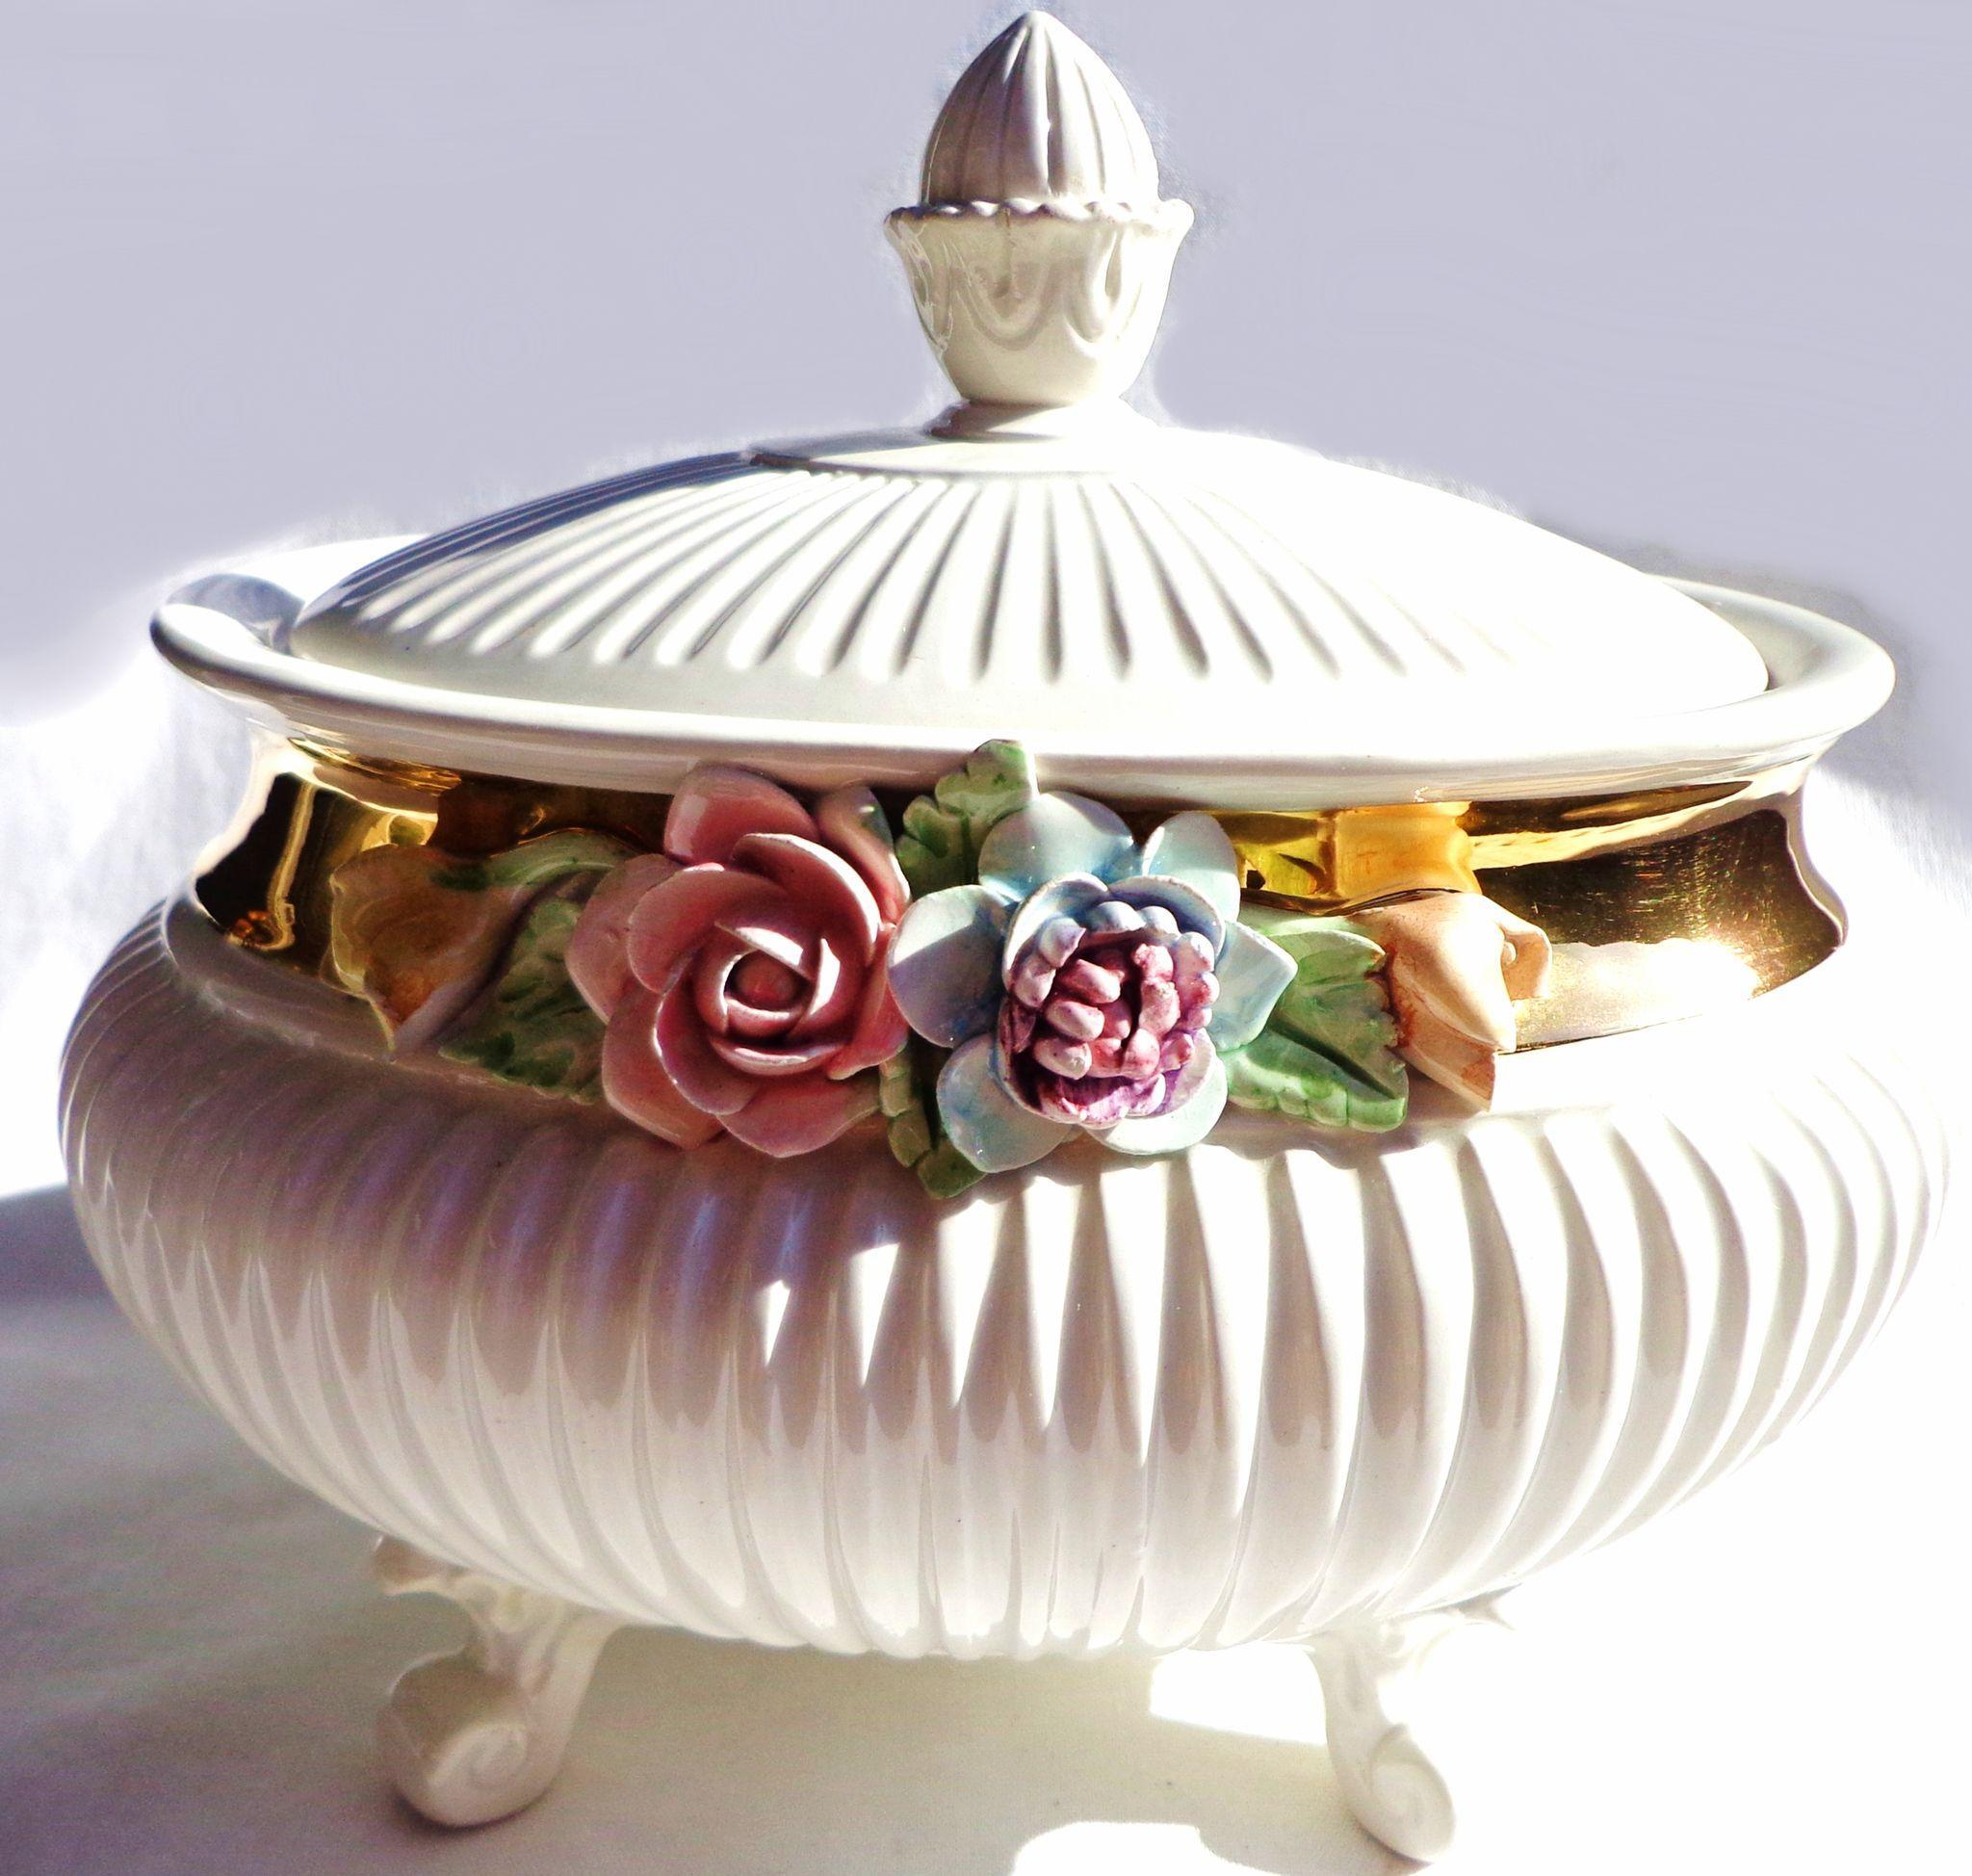 Vintage Porcelain Footed Bowl/ Tureen with Applied Flowers